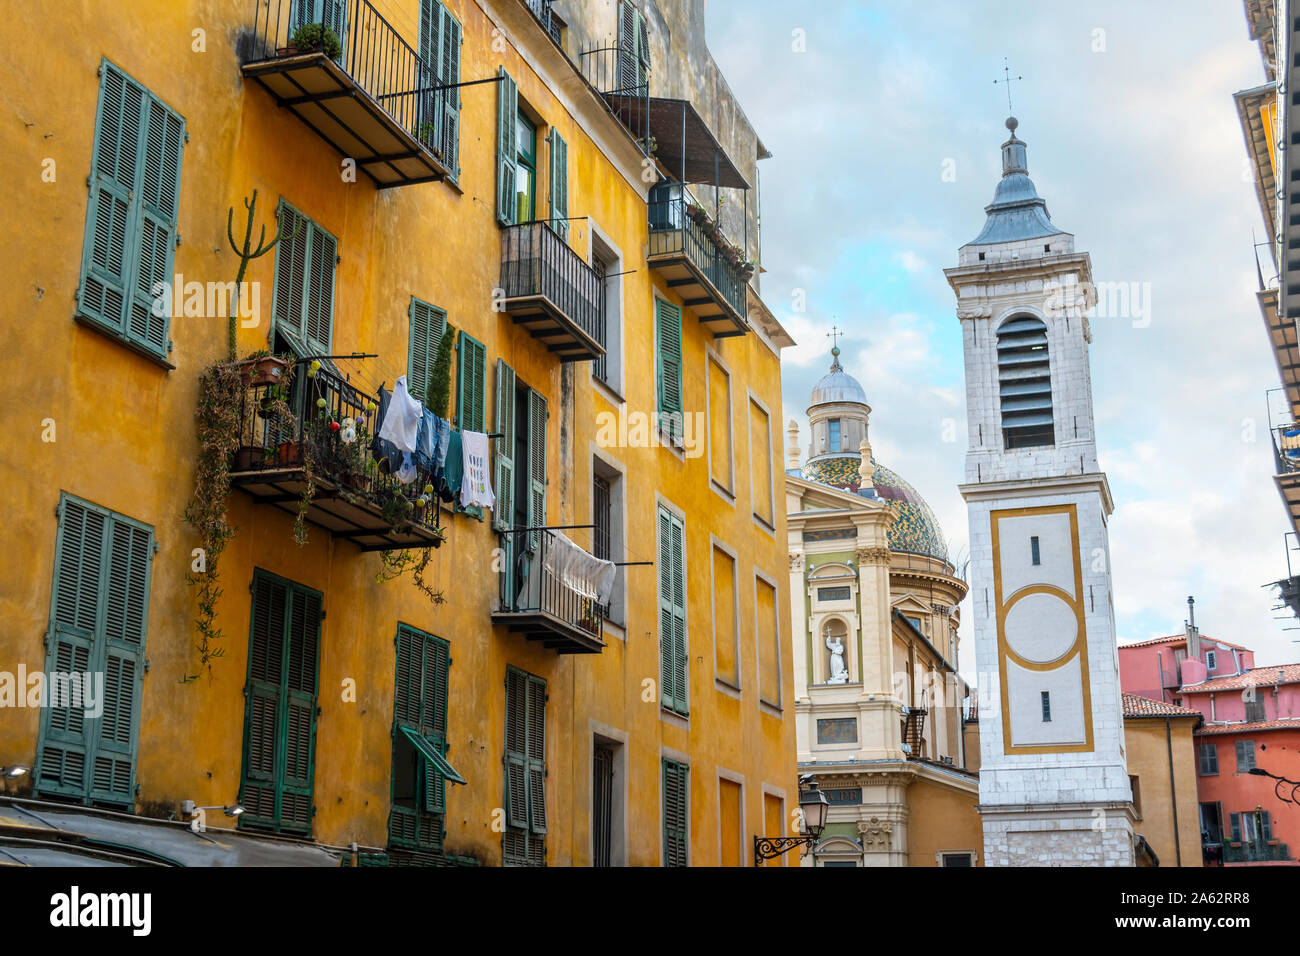 View of the campanile bell tower of the Nice Cathedral at Place Rossetti past an apartment building with laundry hanging in Old Town Nice France. Stock Photo